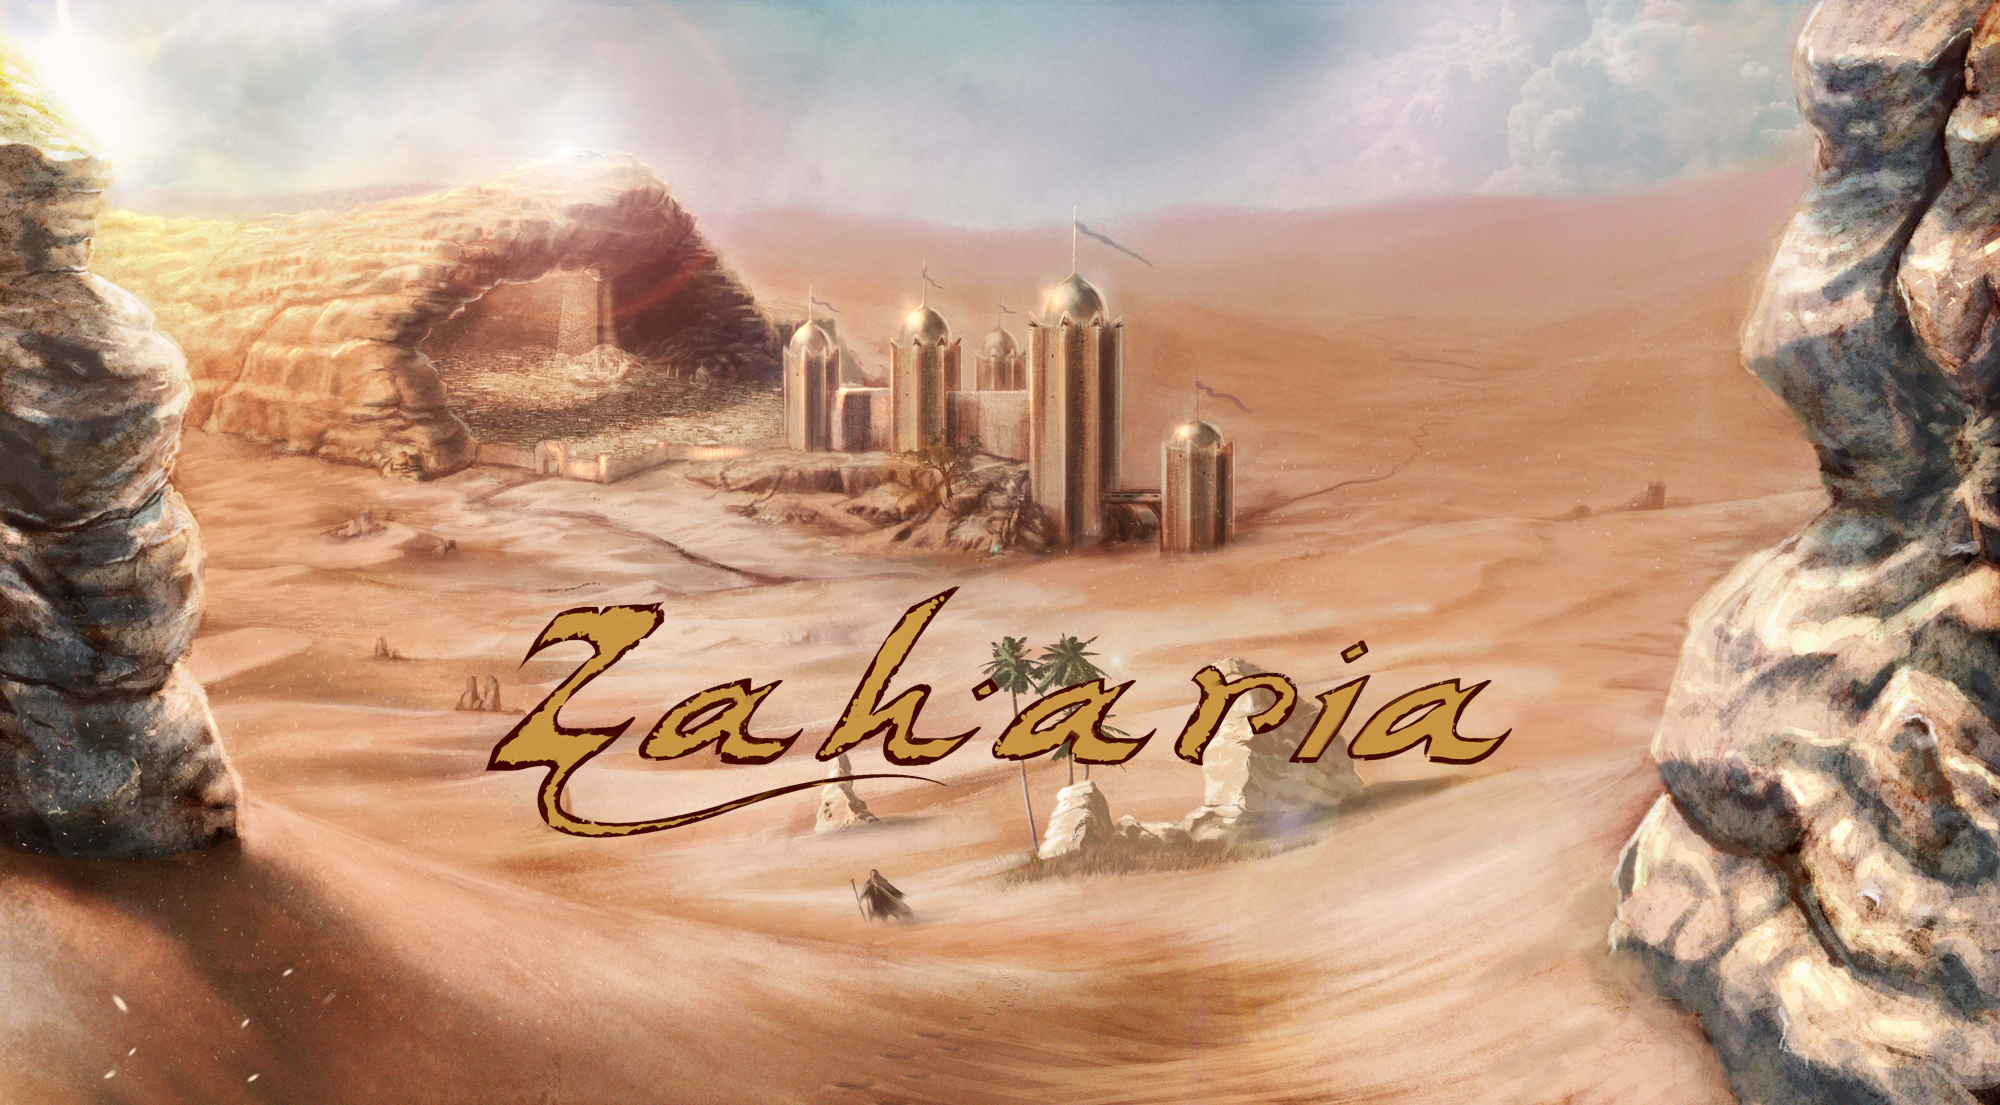 Zaharia is on Kickstarter!